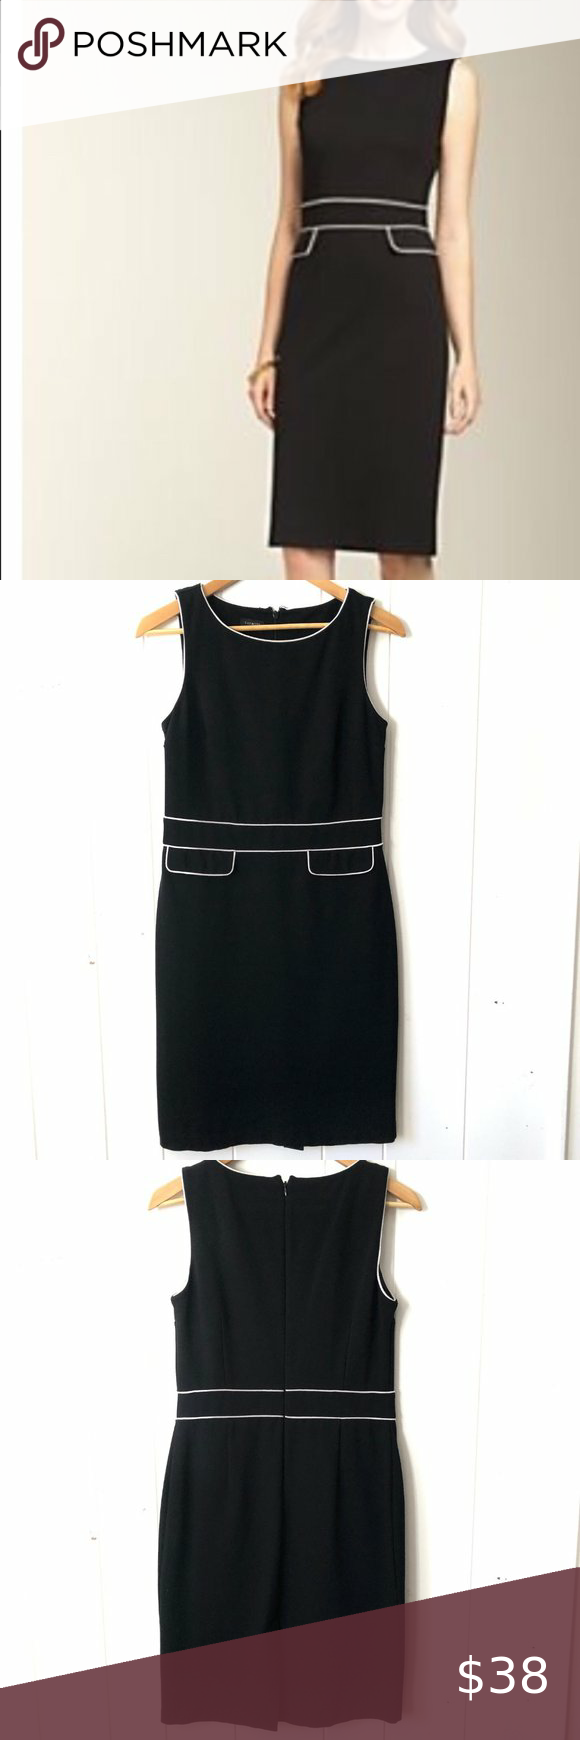 Talbots Black Shift Dress With White Piping Clothes Design Shift Dress Black Black Shift [ 1740 x 580 Pixel ]